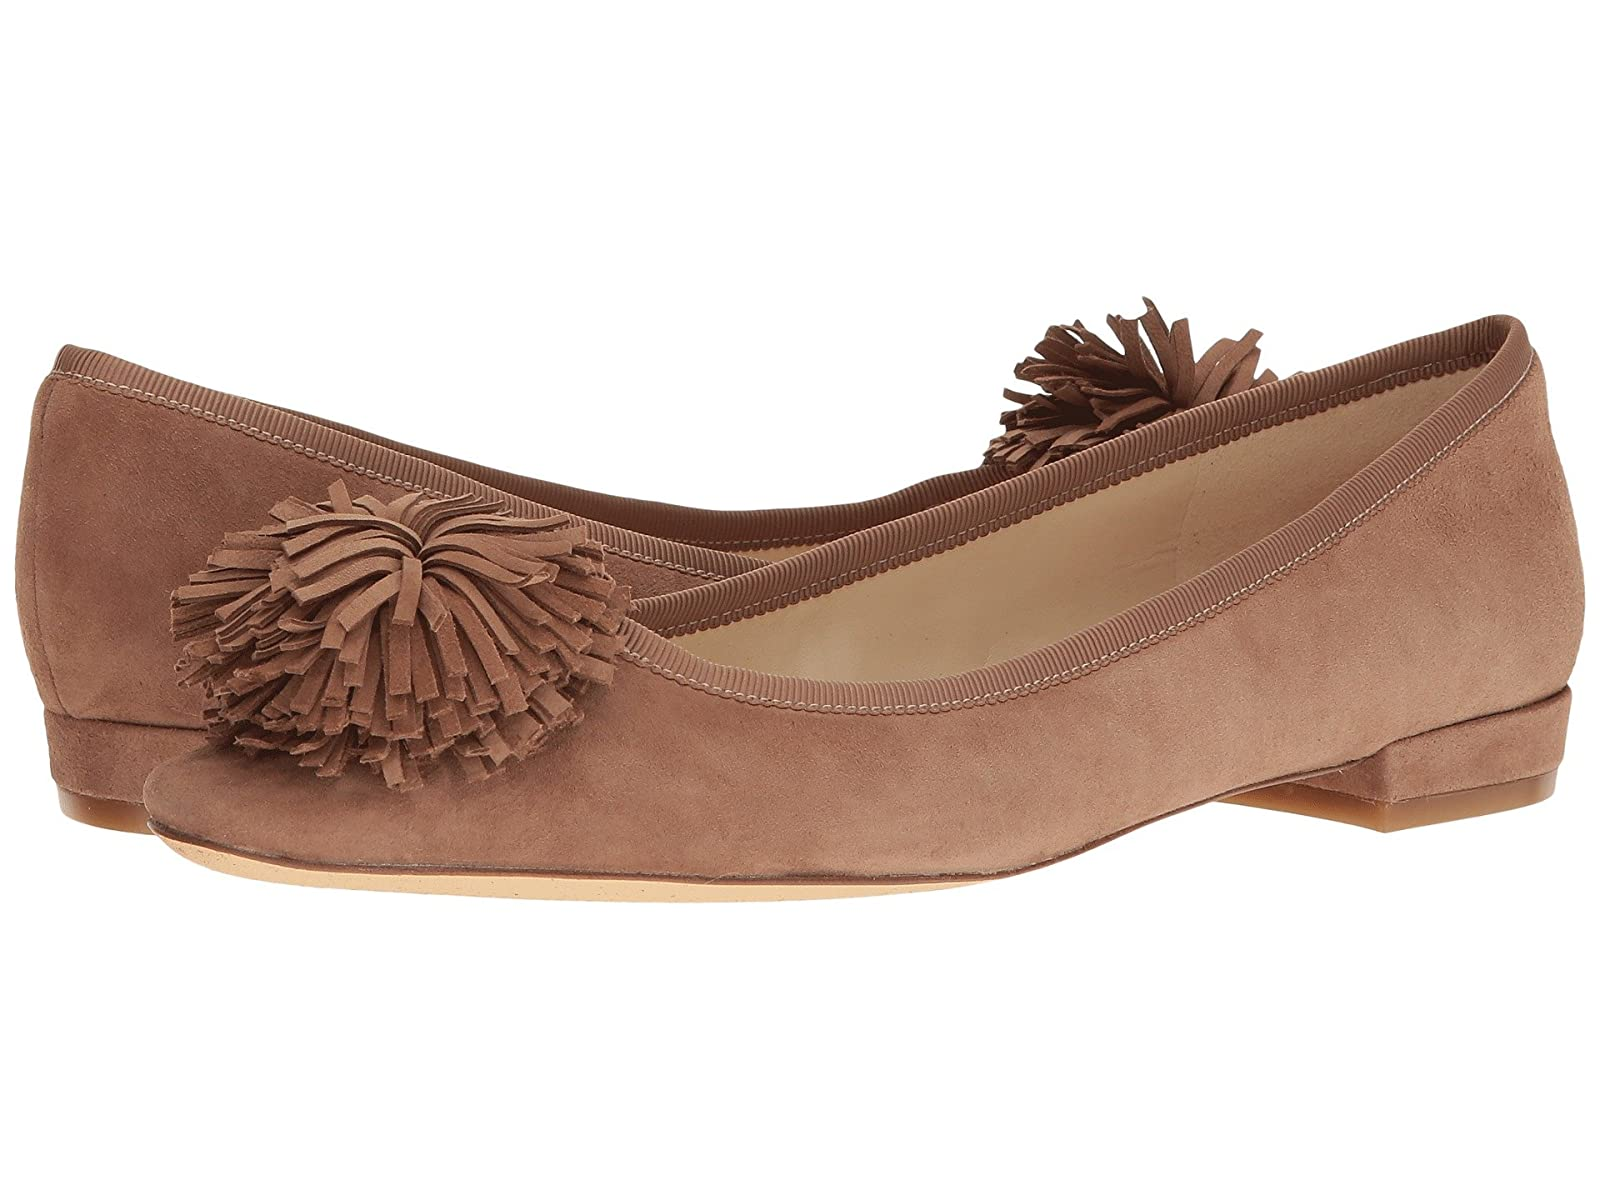 Nine West CrevetteCheap and distinctive eye-catching shoes